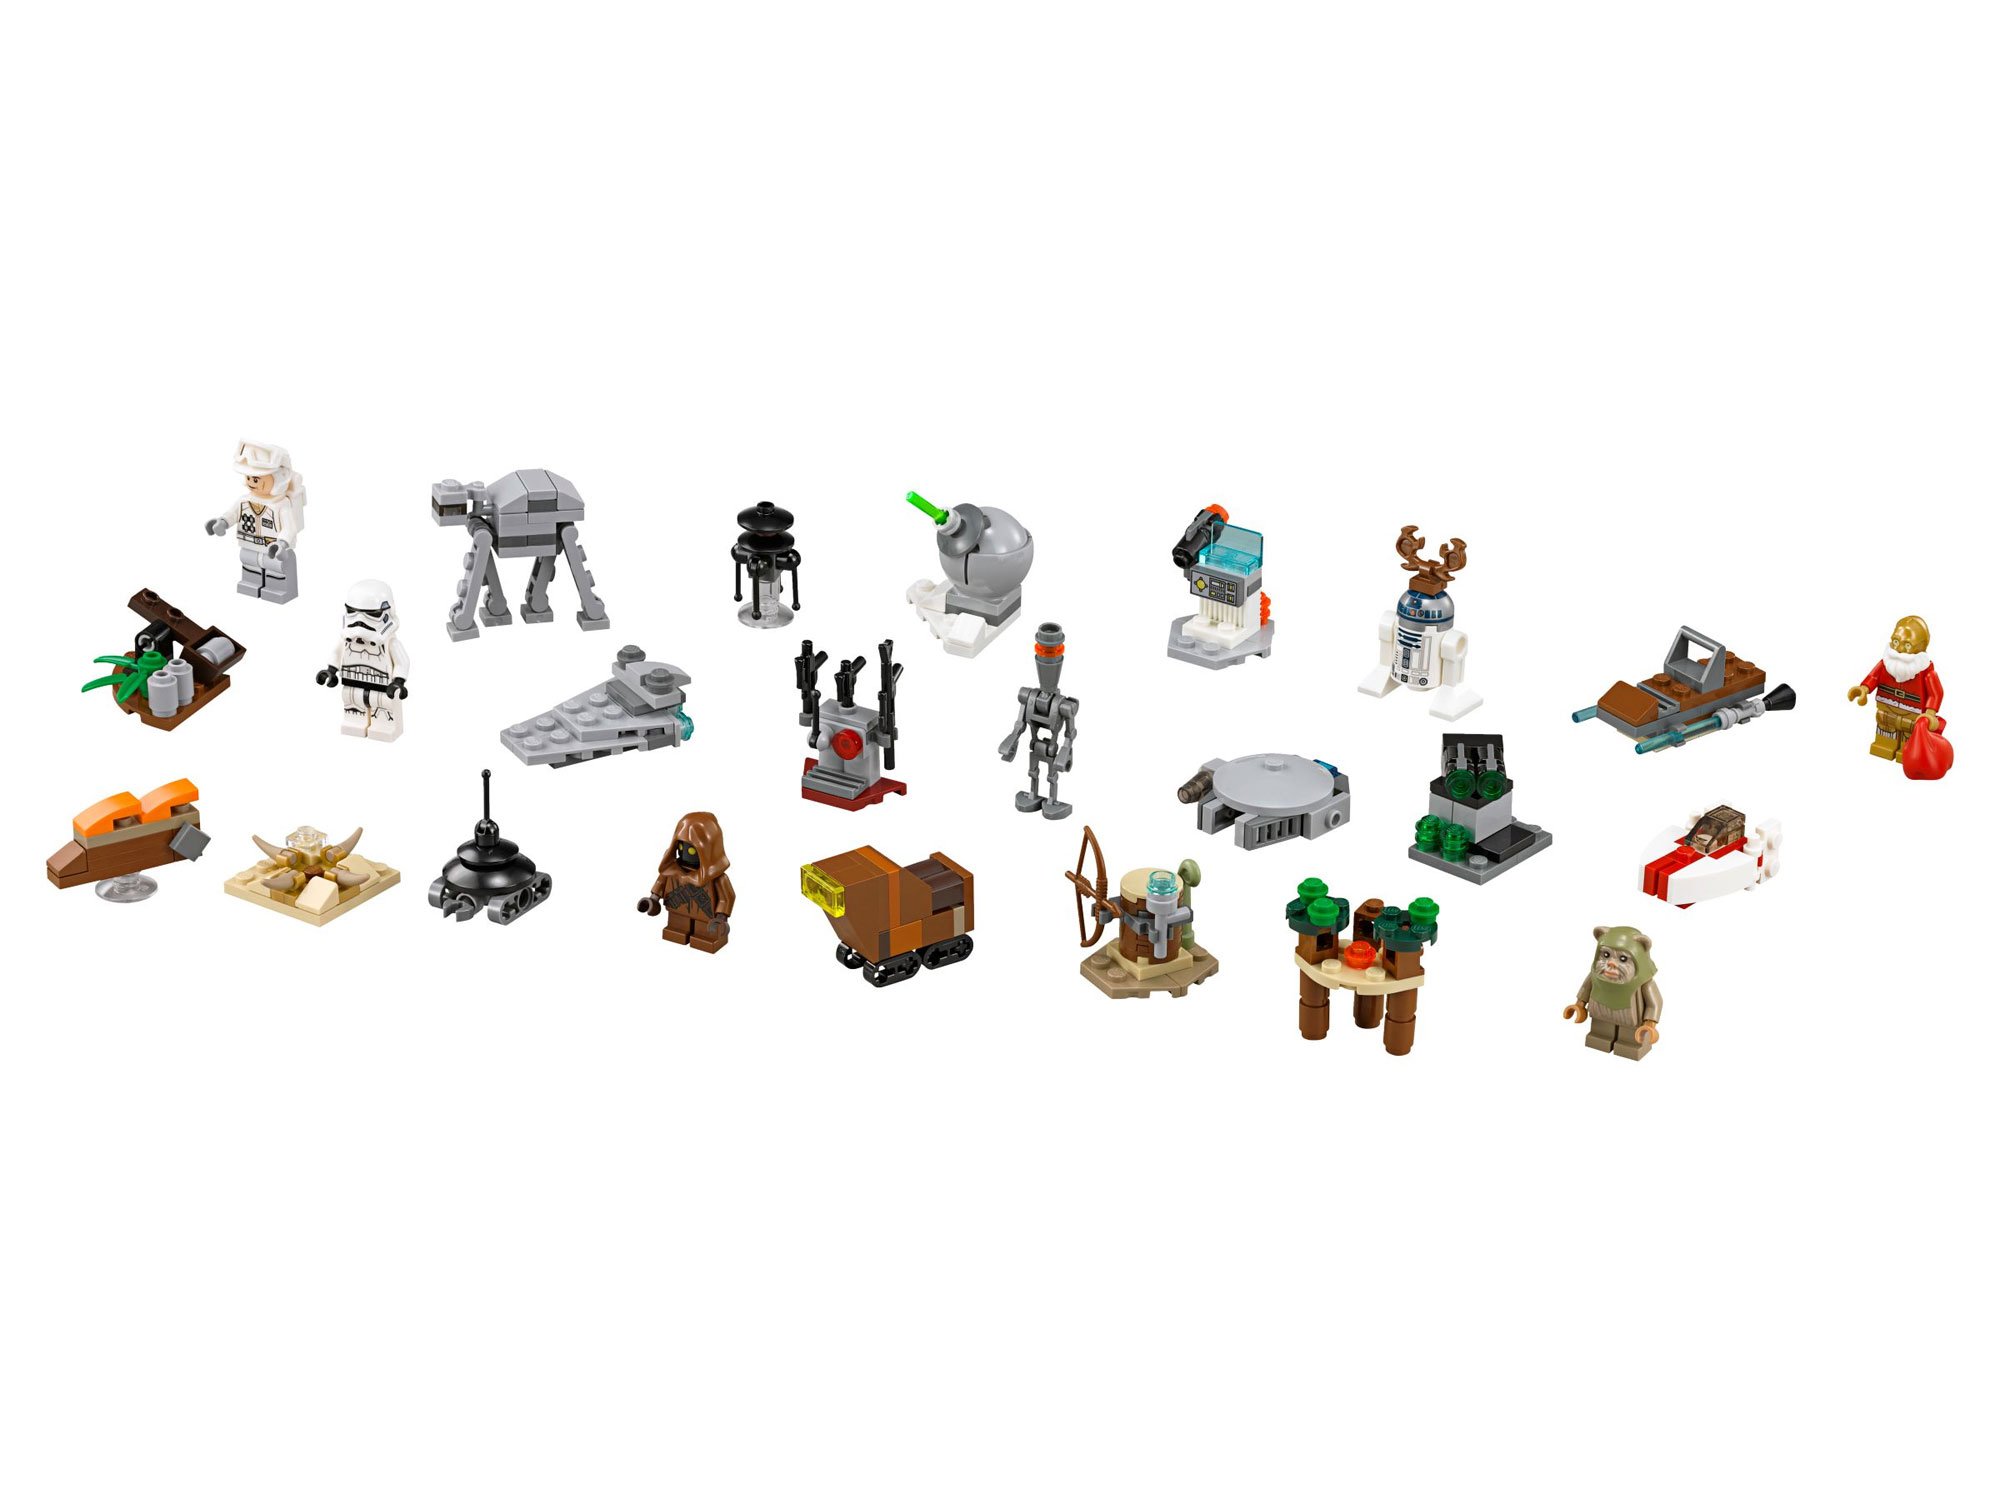 lego 75097 lego star wars lego star wars advent calendar 2015 lego star wars advent. Black Bedroom Furniture Sets. Home Design Ideas